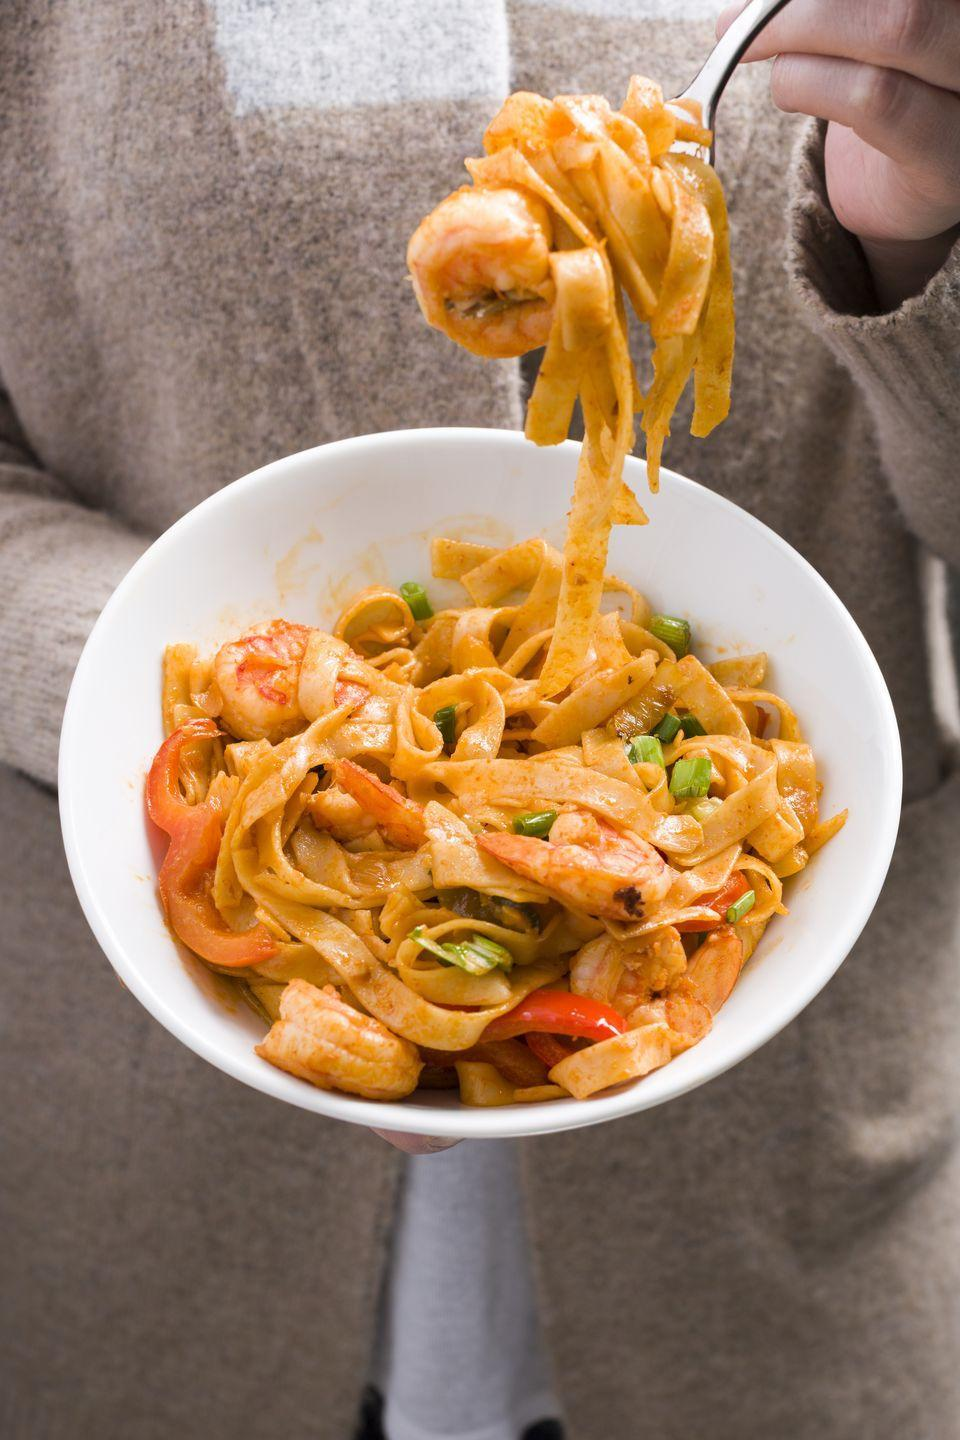 """<p>Judging by the size of that forkful, these shrimp noodles are the bomb.com.</p><p>Get the recipe from <a href=""""https://www.delish.com/cooking/recipe-ideas/recipes/a45479/sriracha-shrimp-noodles-recipe/"""" rel=""""nofollow noopener"""" target=""""_blank"""" data-ylk=""""slk:Delish"""" class=""""link rapid-noclick-resp"""">Delish</a>. </p>"""